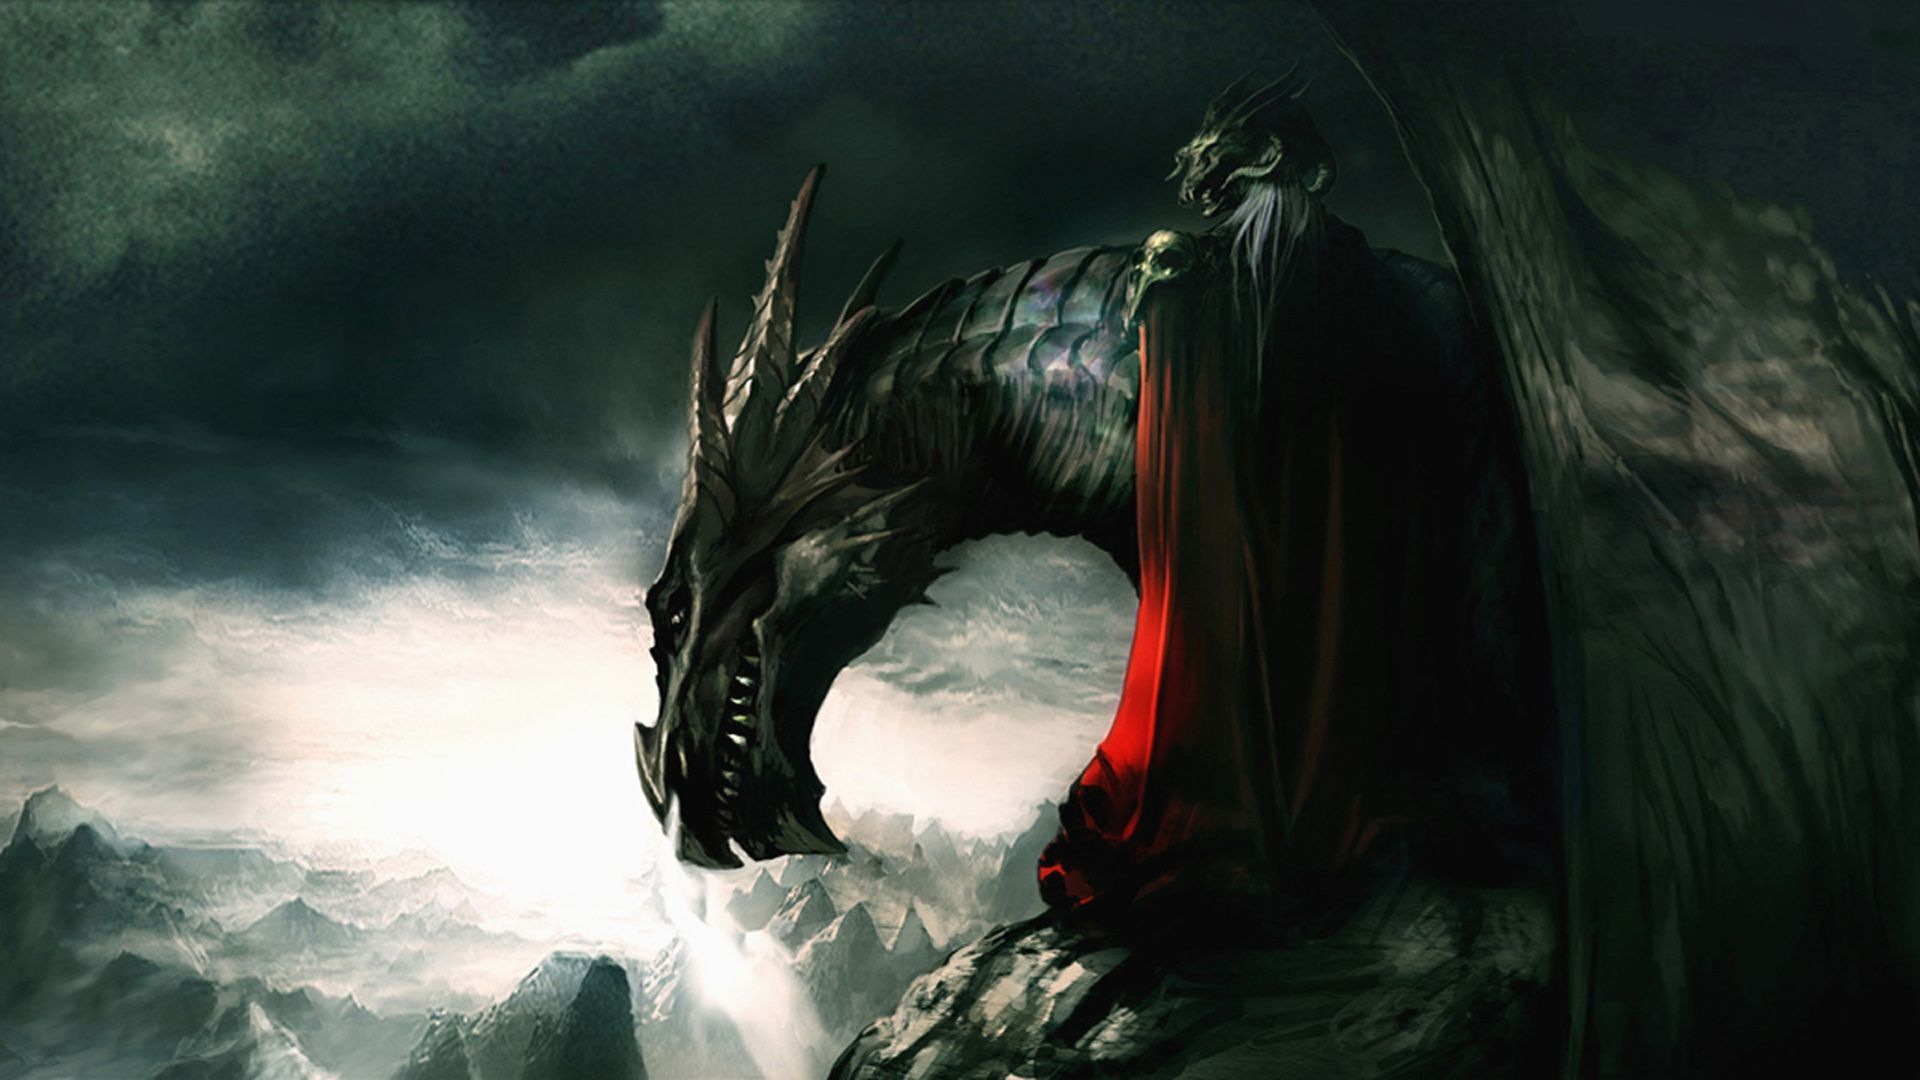 Hd wallpaper dragon - Interesting Dragon Hd Hdq Images Collection 46893258 1920x1080